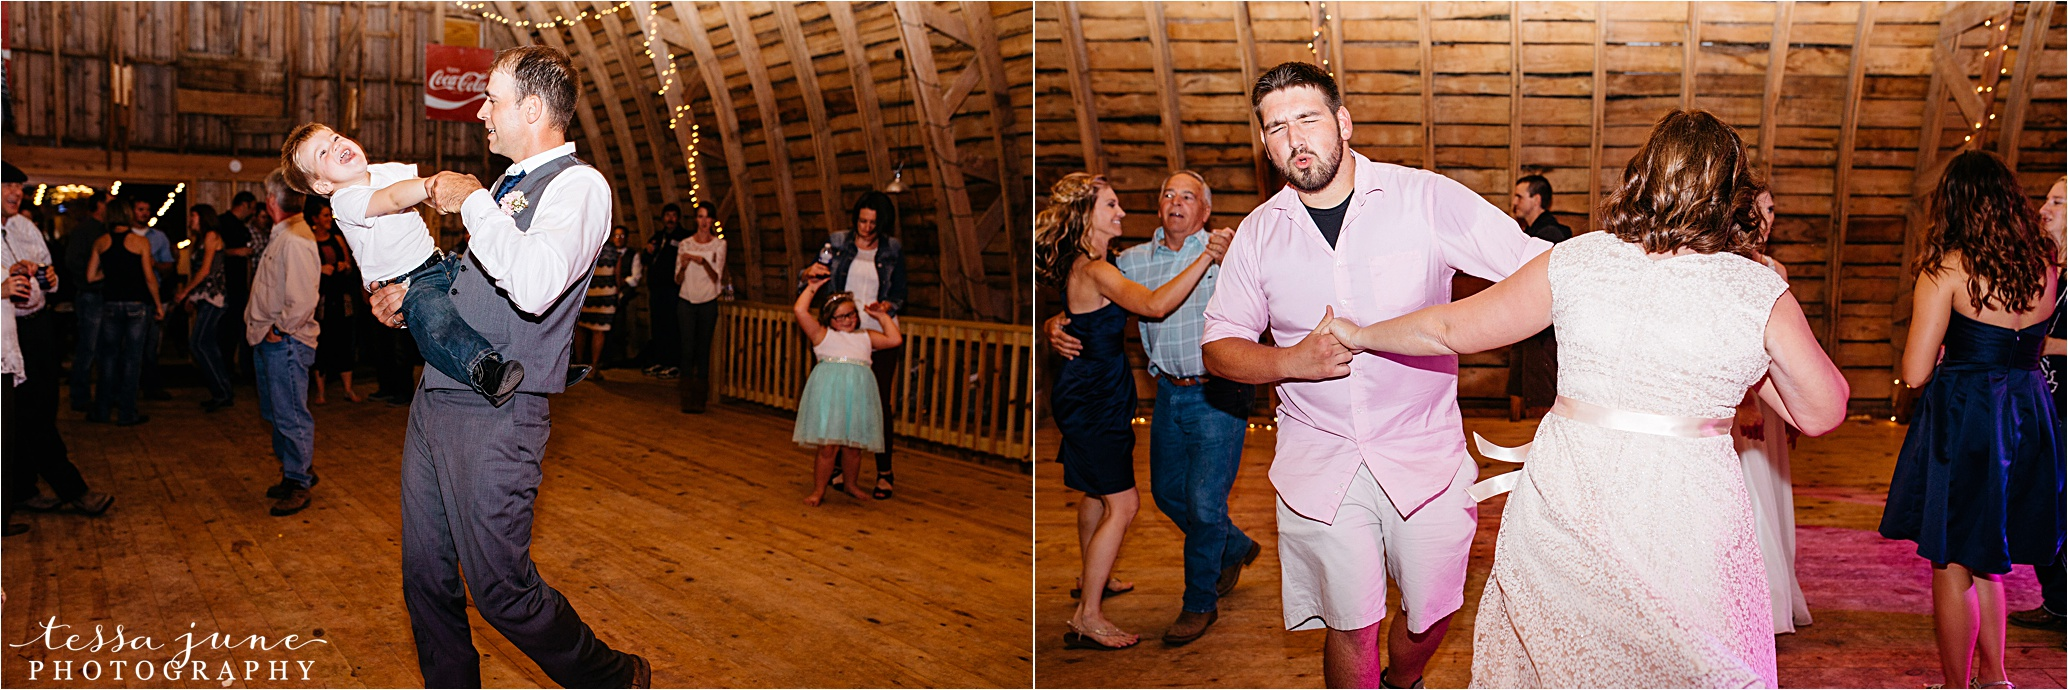 cadillac-ranch-wedding-maple-lake-st-cloud-wedding-photographer_0092.jpg